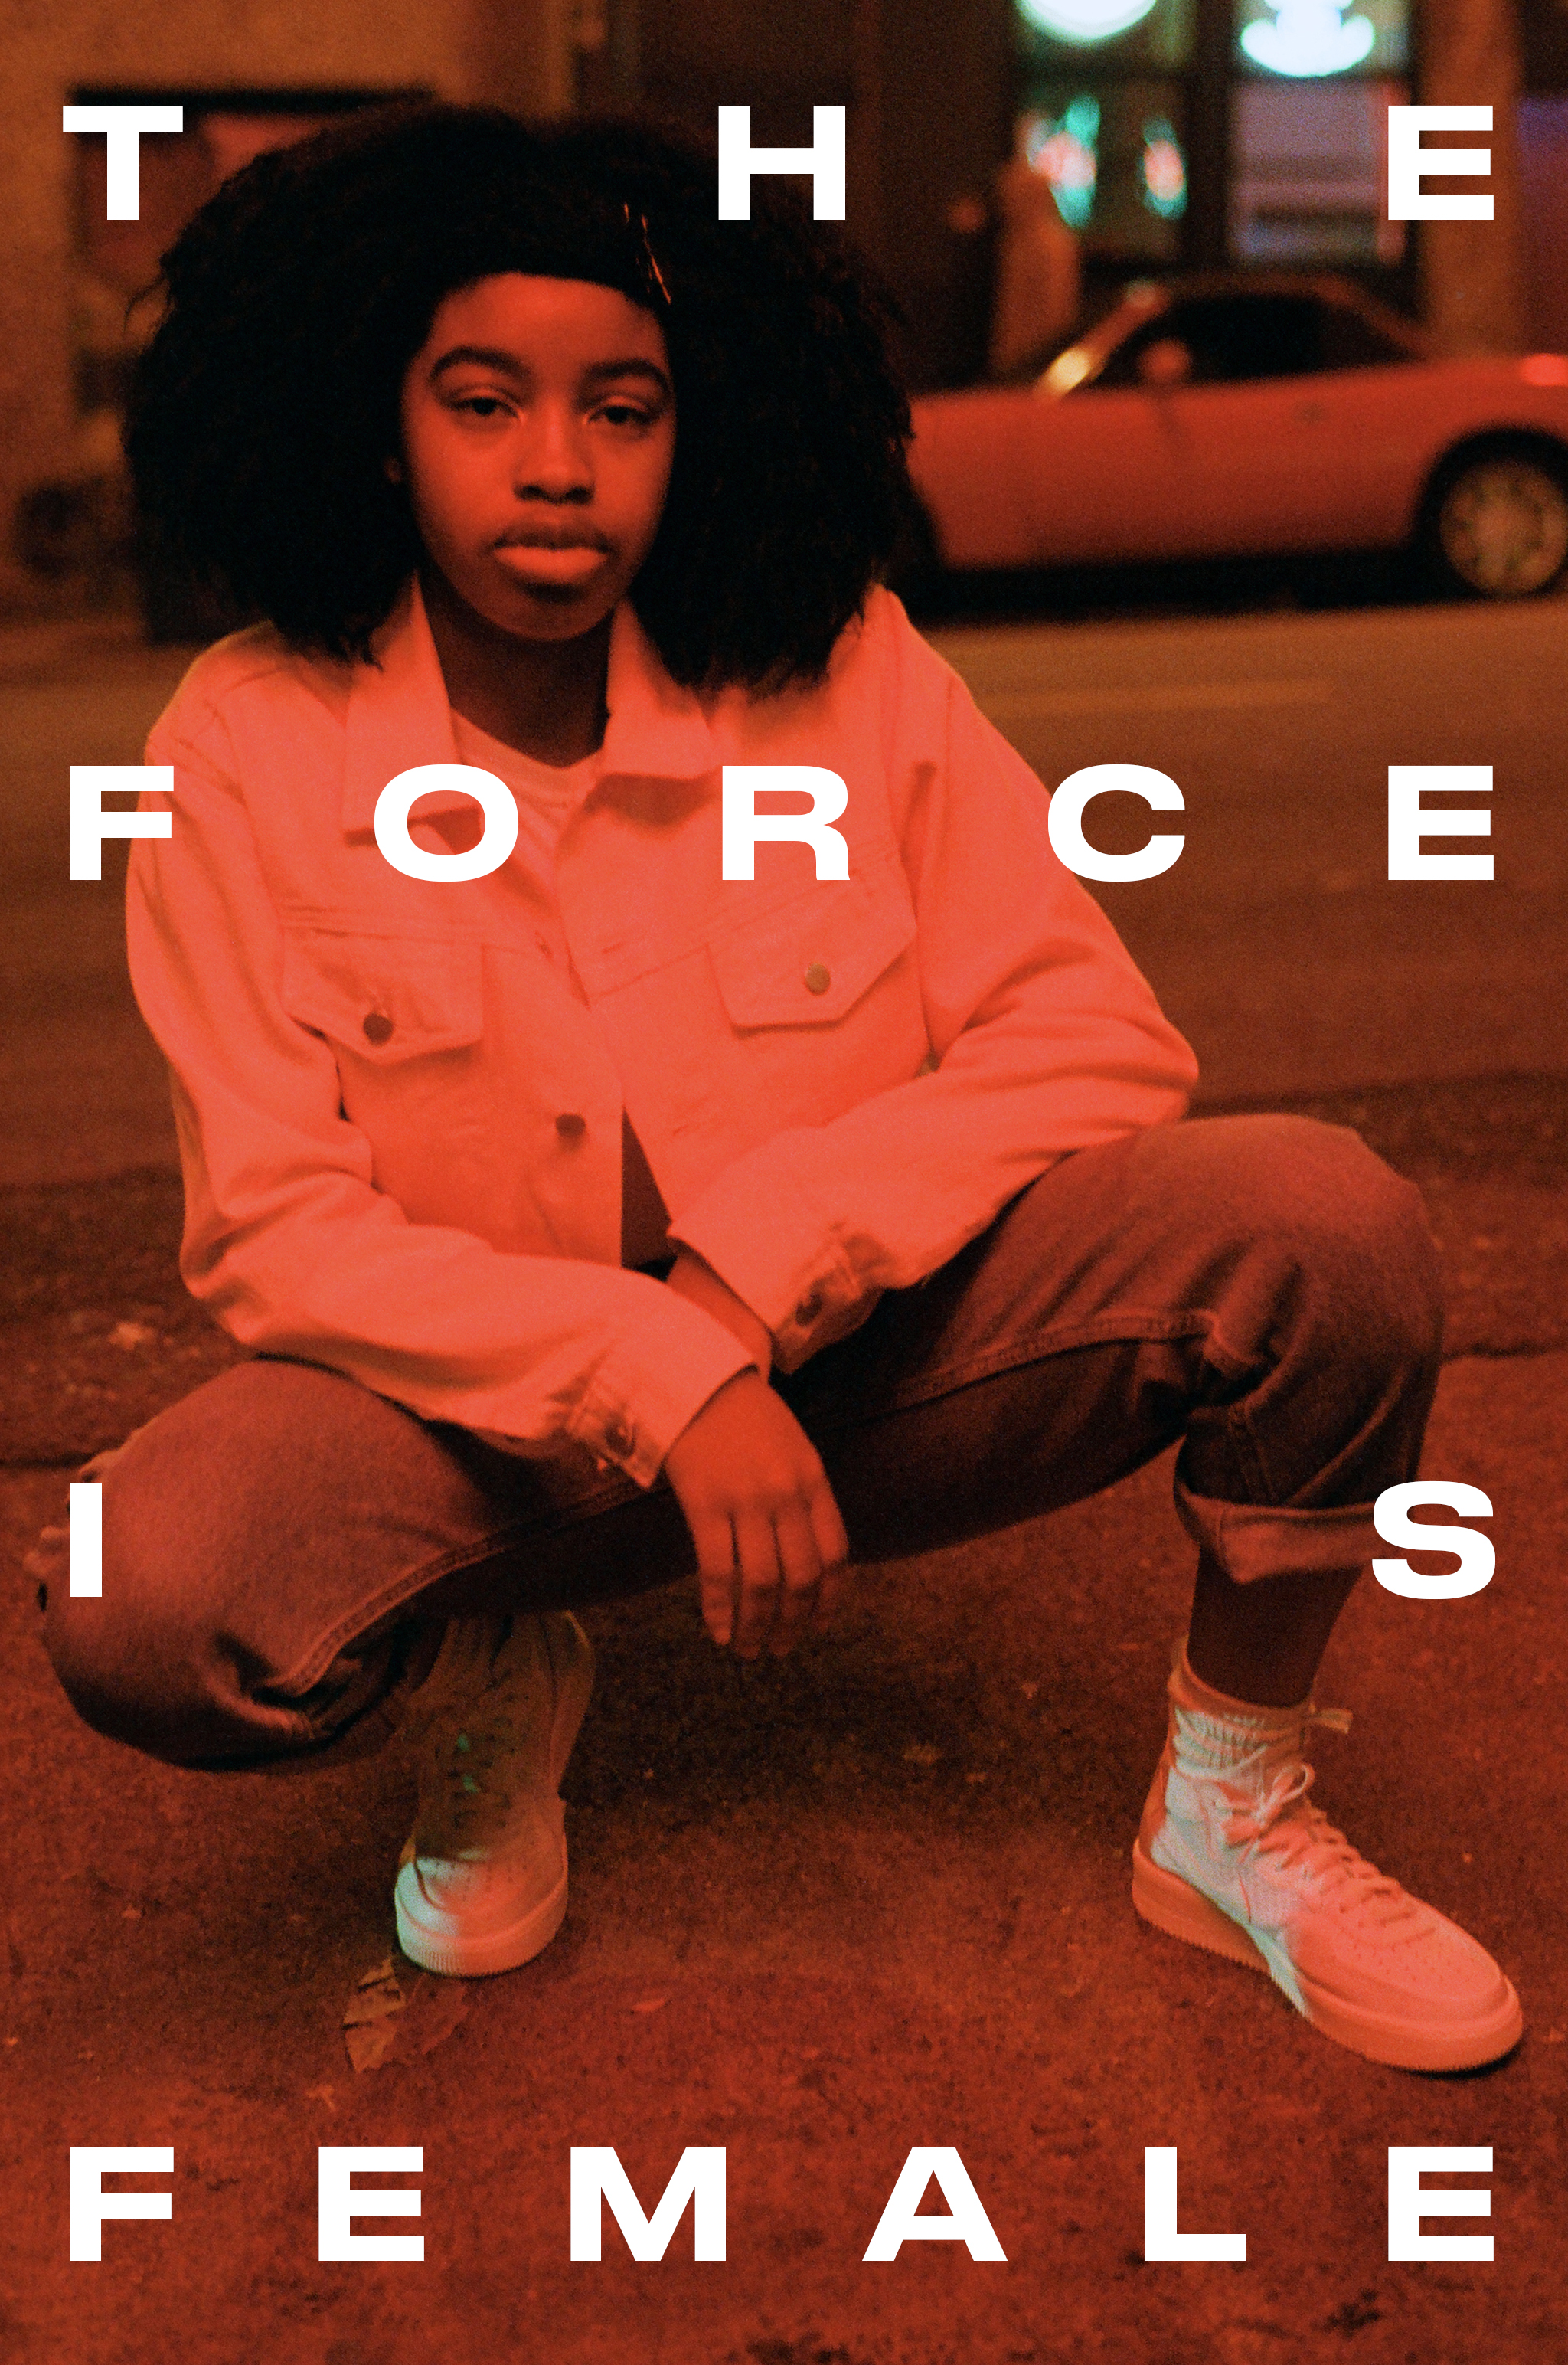 VSCO Partners with Nike on FORCE is Female Campaign   Desiring to recognize today's generation of strong women, we partnered with  Nike Sportswear  and five talented photographers to celebrate females who exhibit courage and pursue an unbridled definition of success. Women of today are a force to be reckoned with. They hold the power to inspire, to challenge mentalities that impose limitations, and to write a new, better future for themselves and their communities.